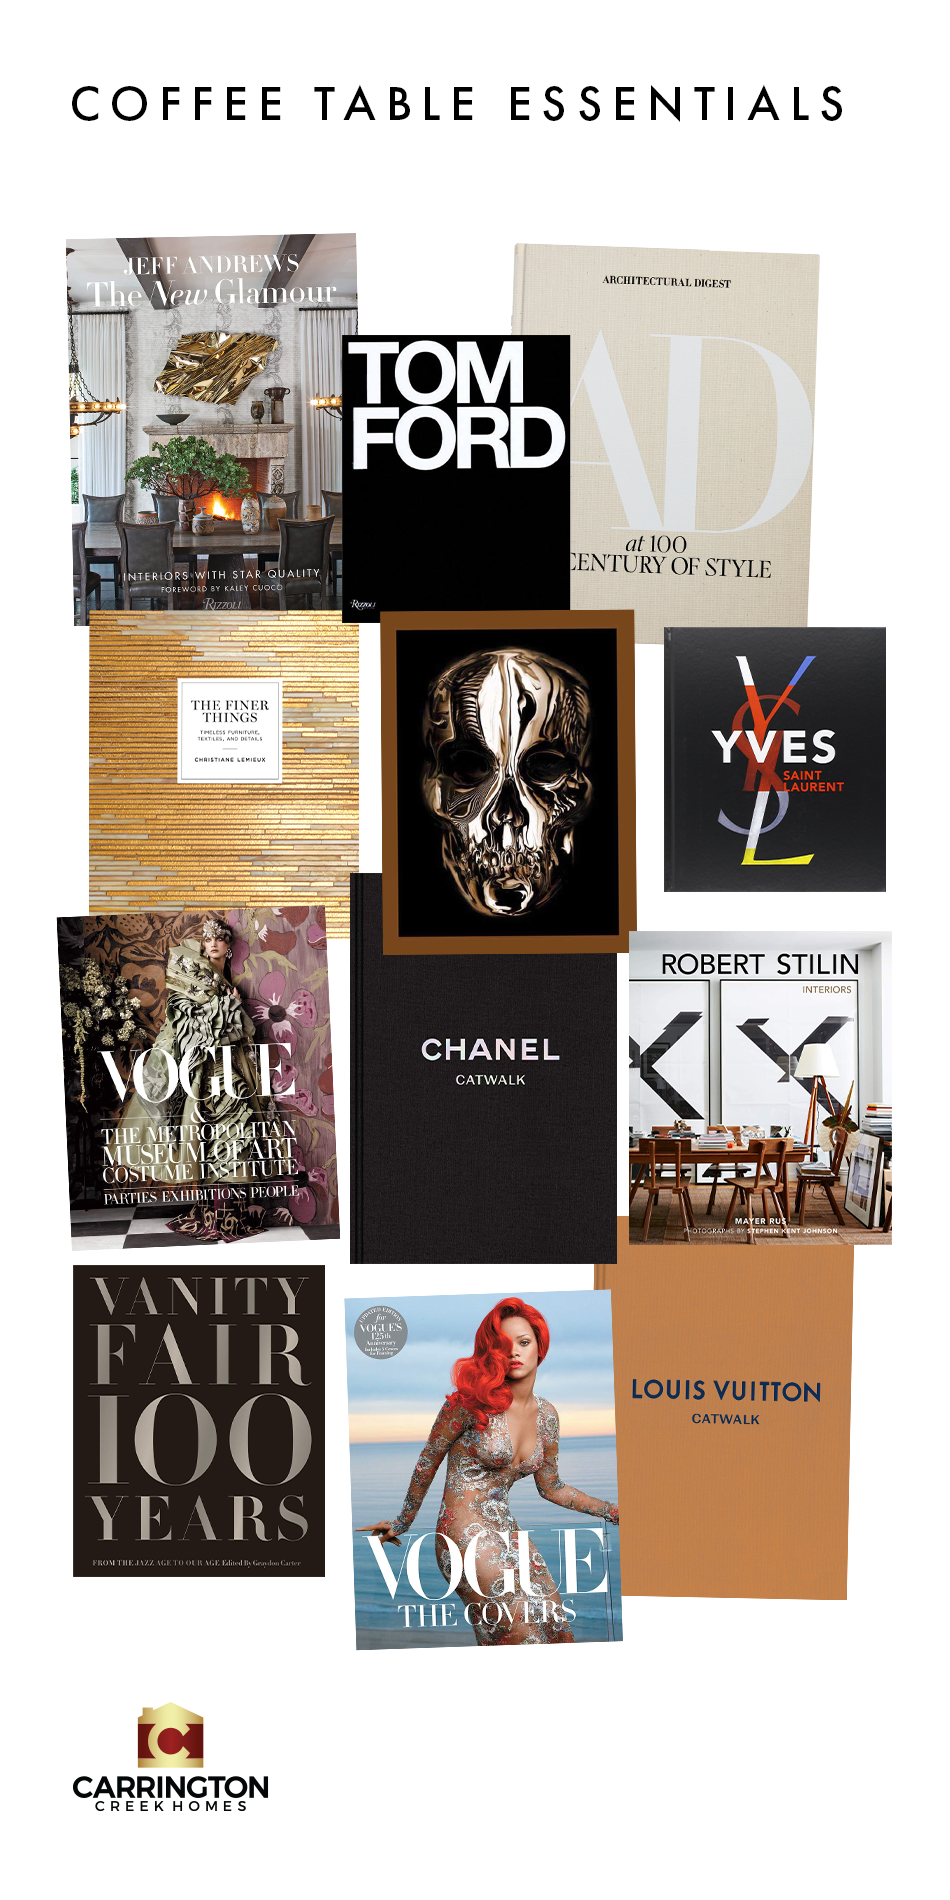 Coffee Table Essentials Chanel Coffee Table Book Best Coffee